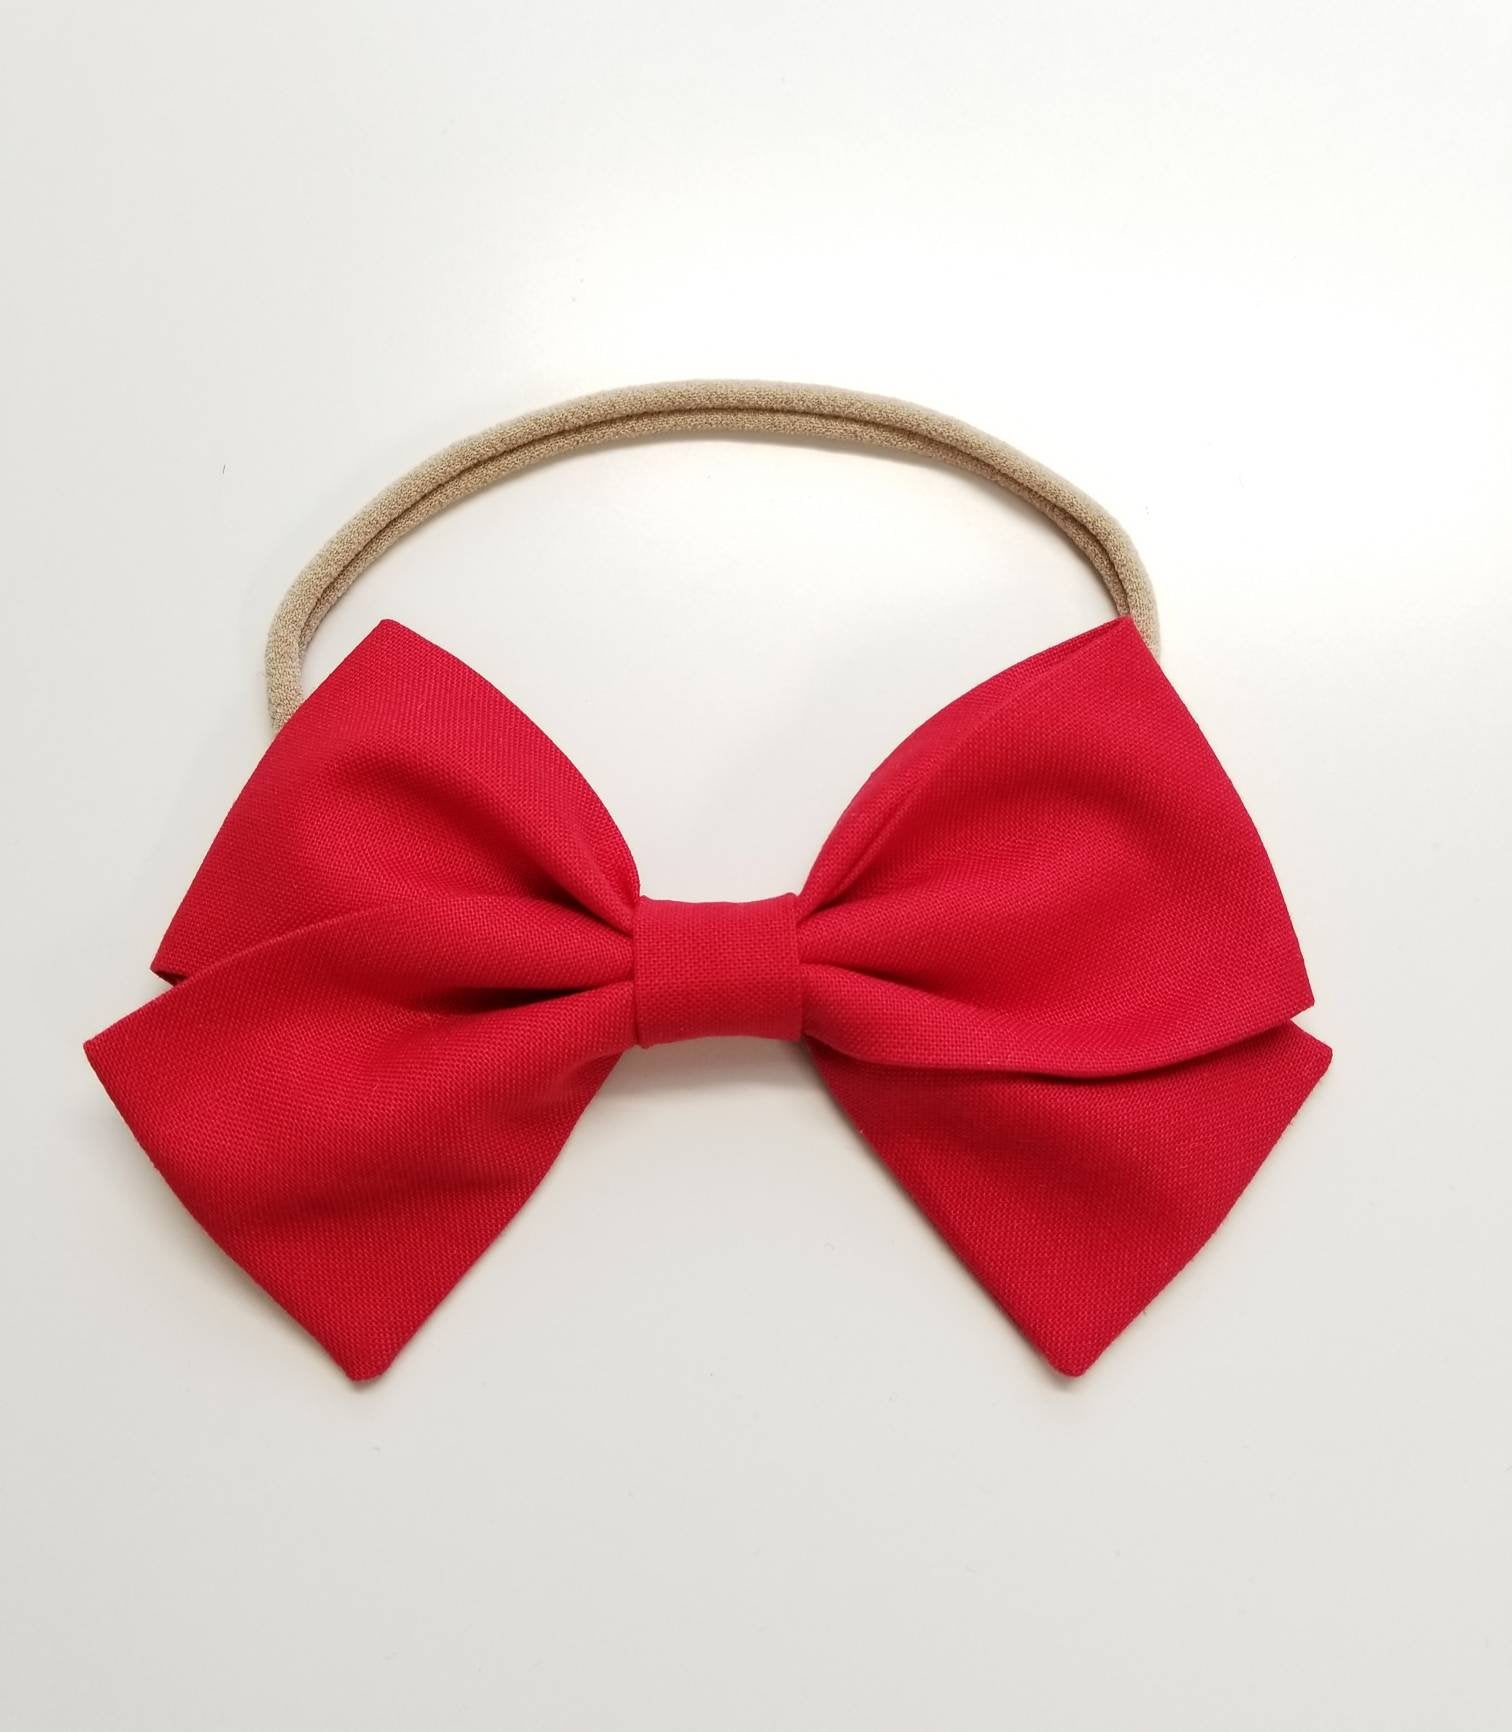 Bright Red, baby Bows, Nylon Headband, Hair Clips, Vanaguelite, cotton headbands, hair accessories.